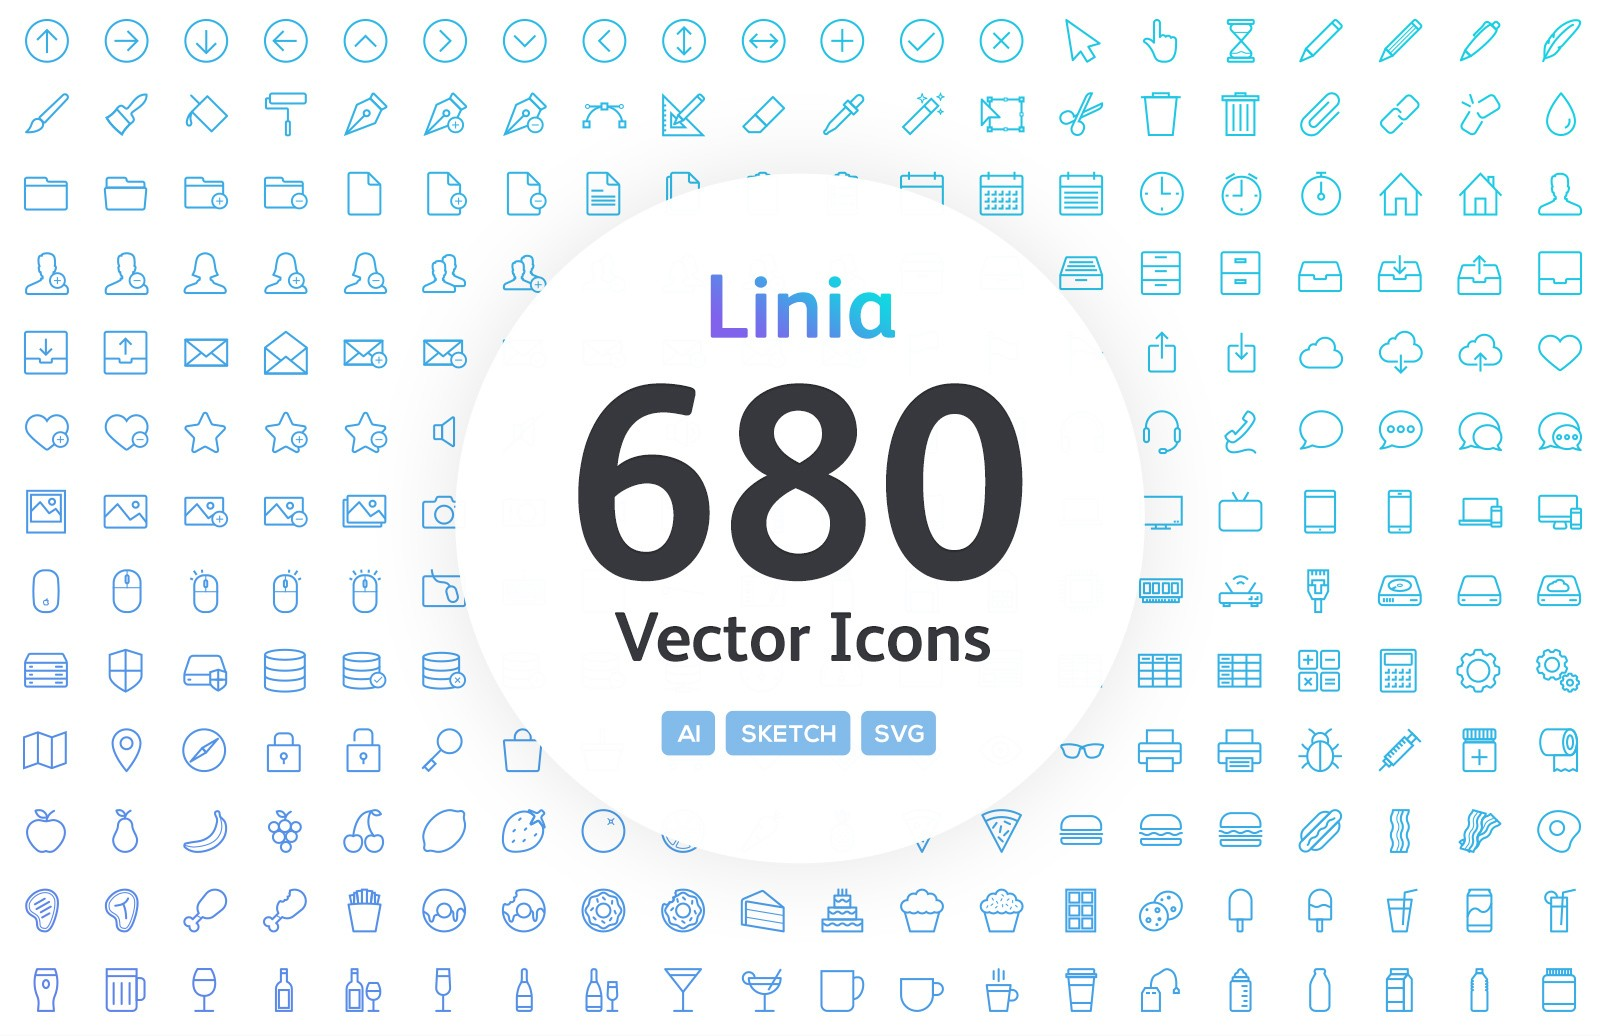 Linia - Vector Line Icons